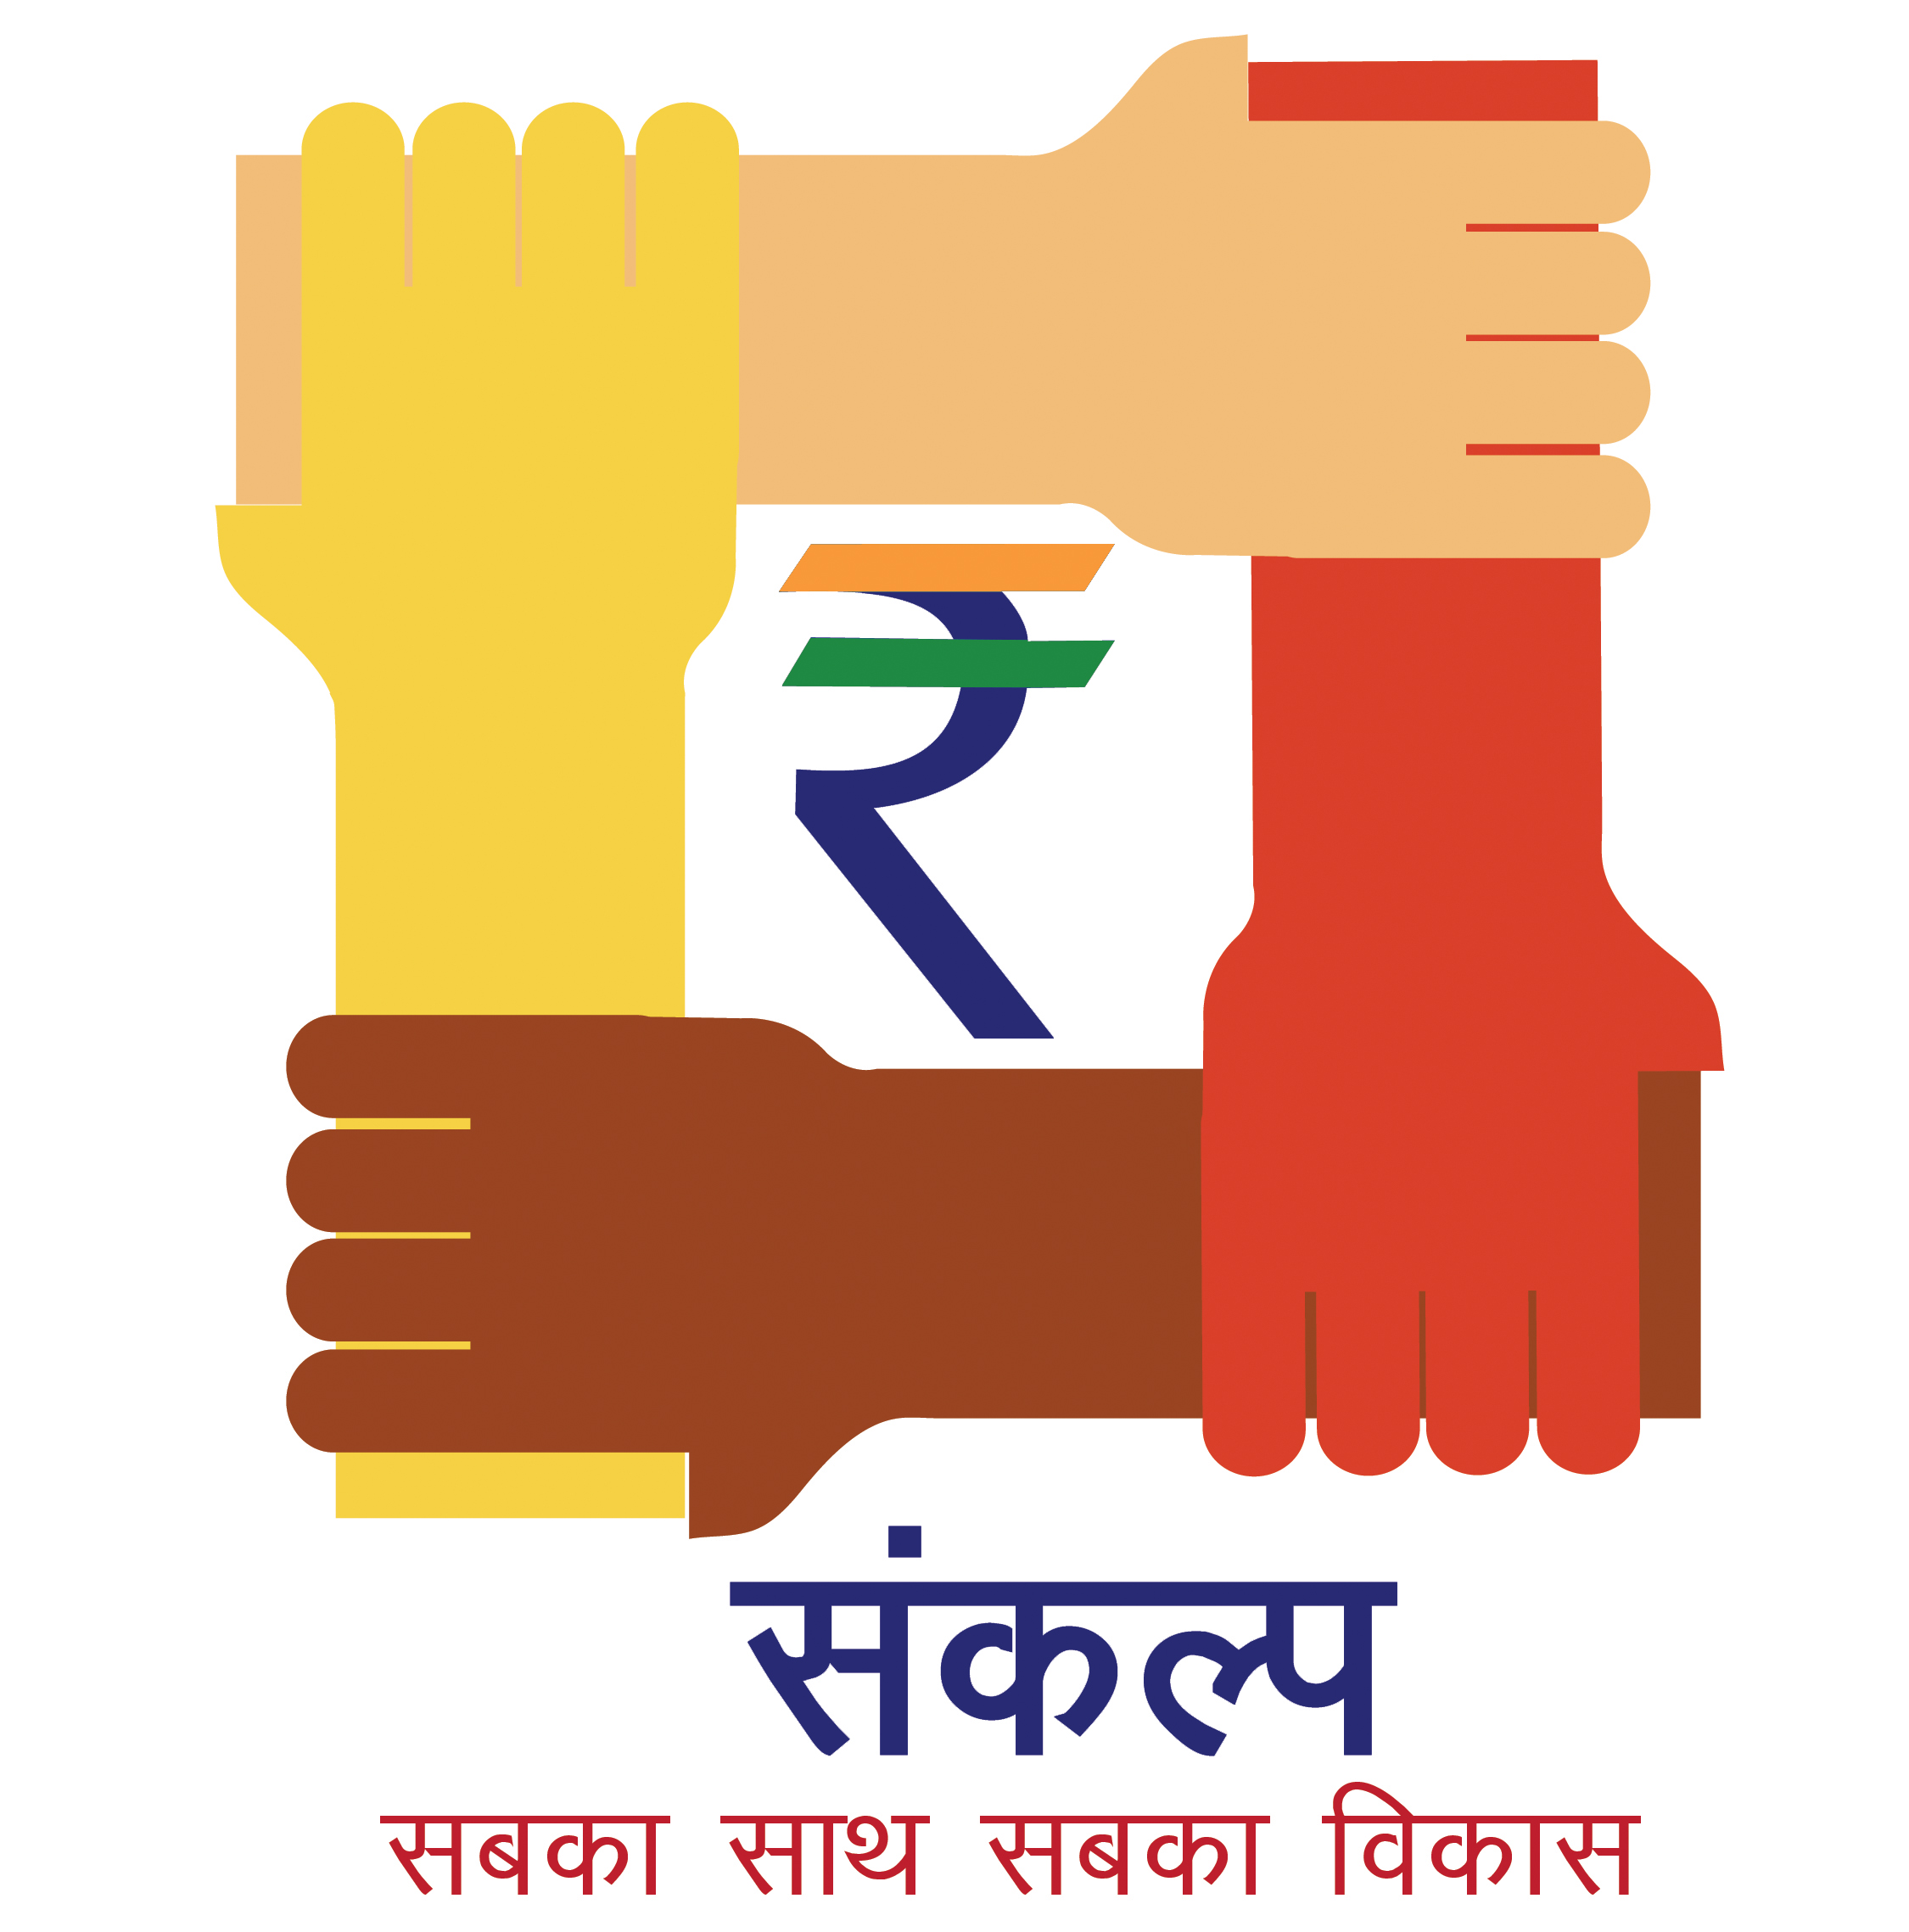 Towards inclusive financial services mygov the rupee symbol represents the financial aspect of the scheme theres also slight modification by giving tricolour to the rupee symbol buycottarizona